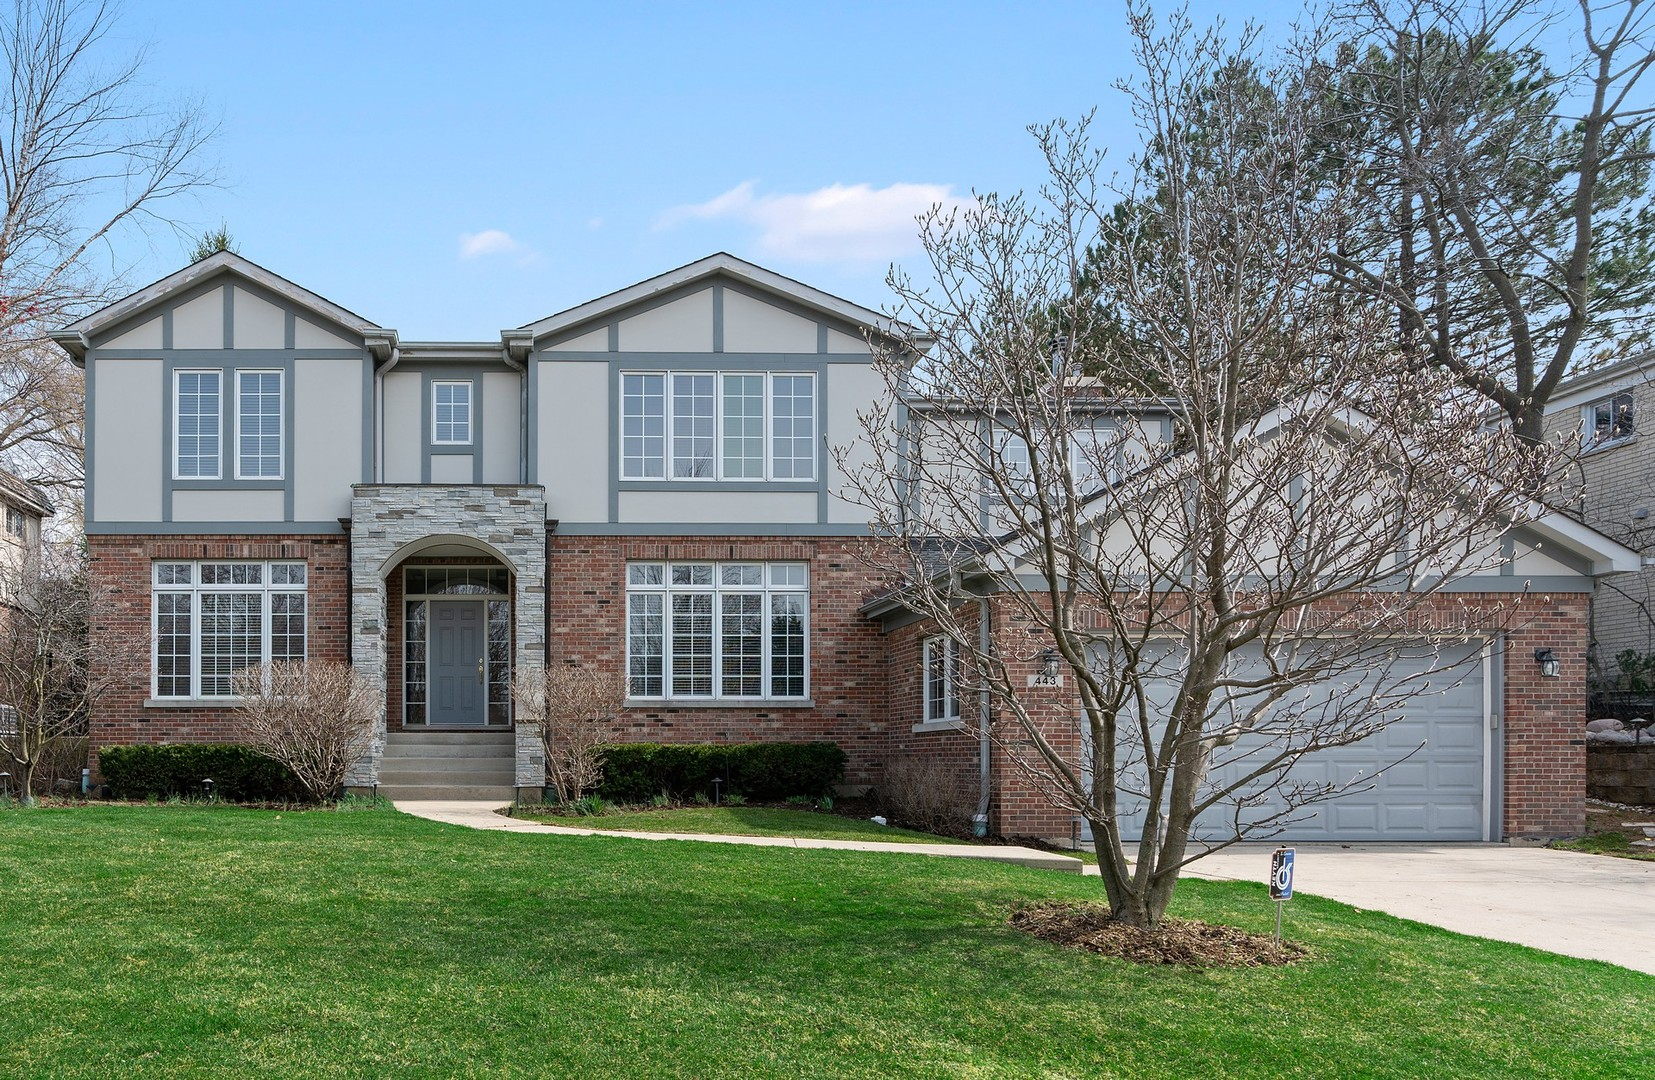 443 Hillside ,Highland Park, Illinois 60035